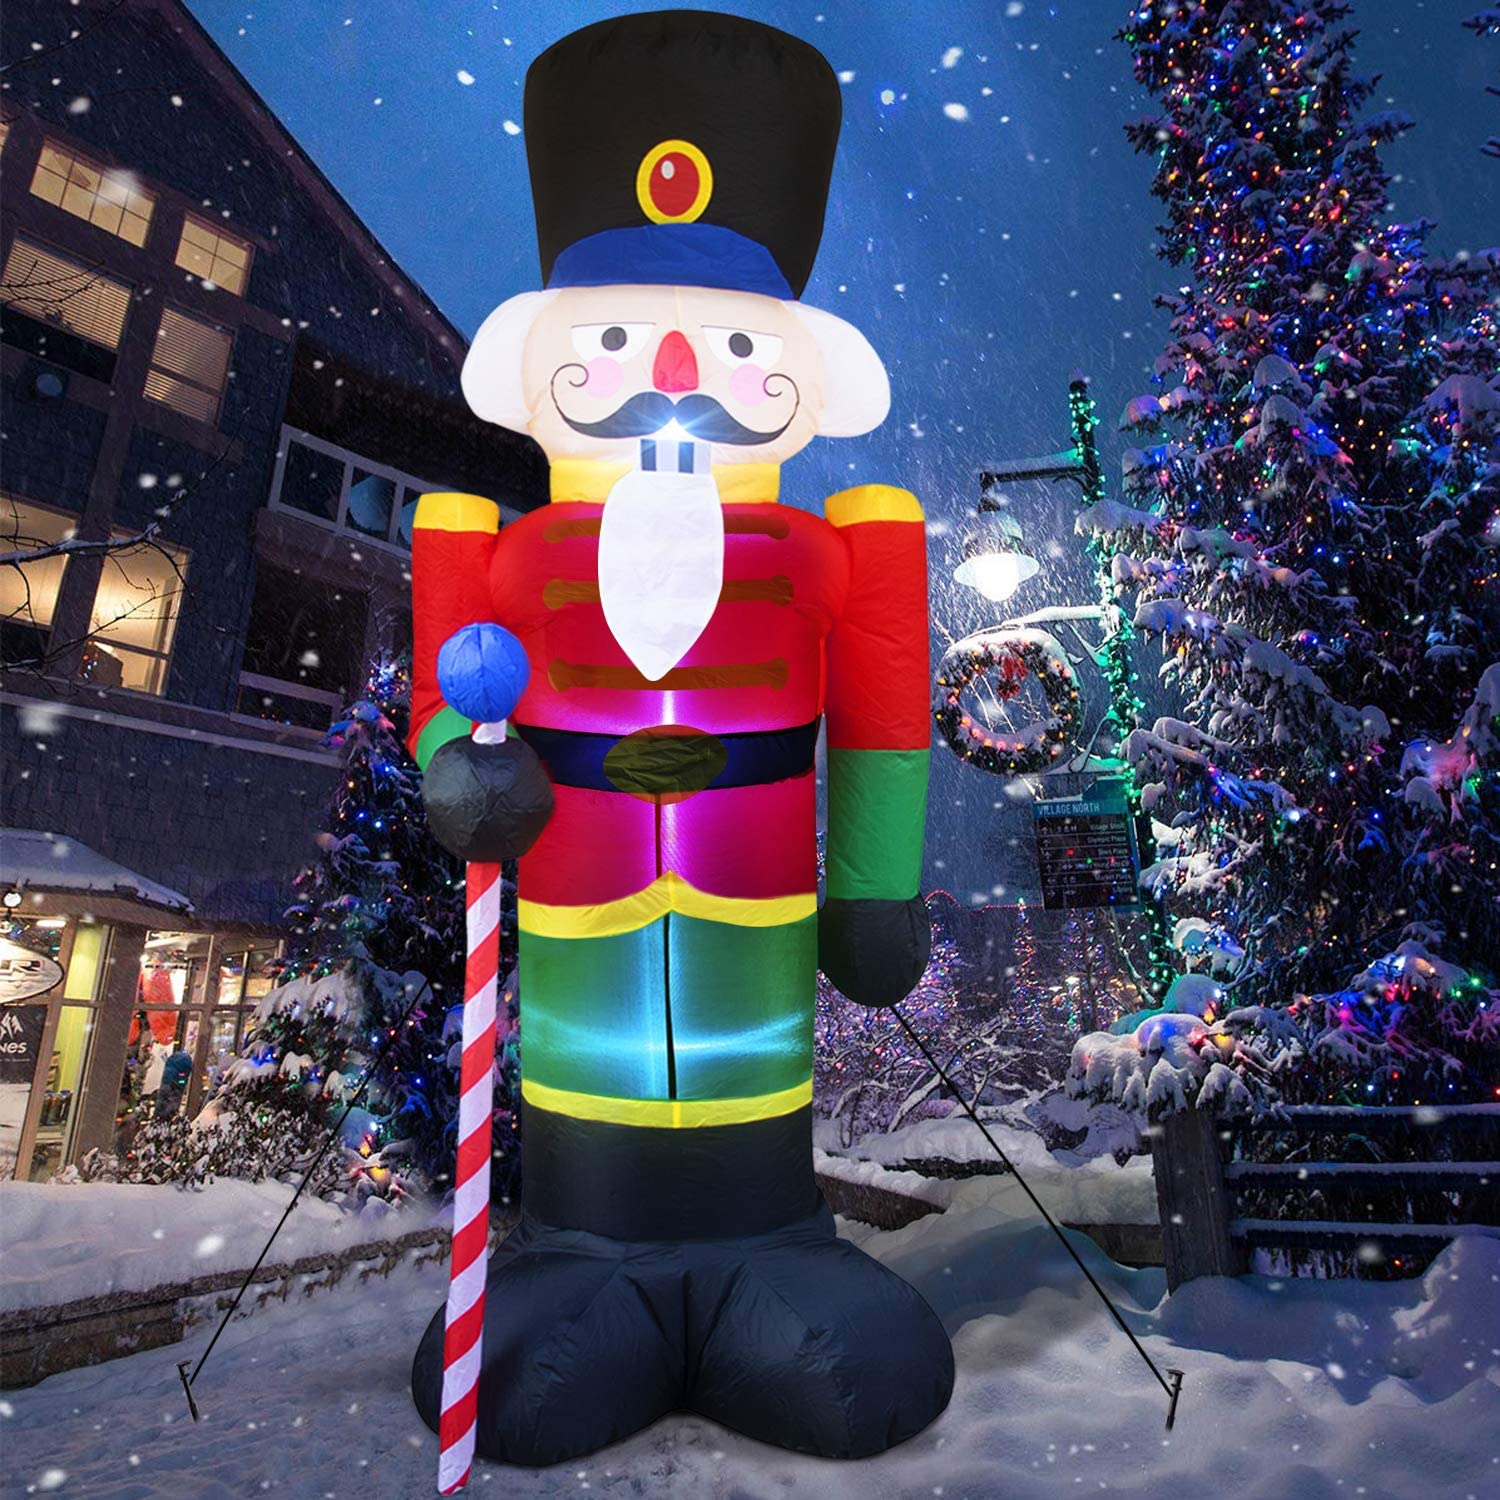 8 Foot Max 83% OFF Christmas Inflatable Soldier Nutcracker Outdoor Max 75% OFF Decoratio